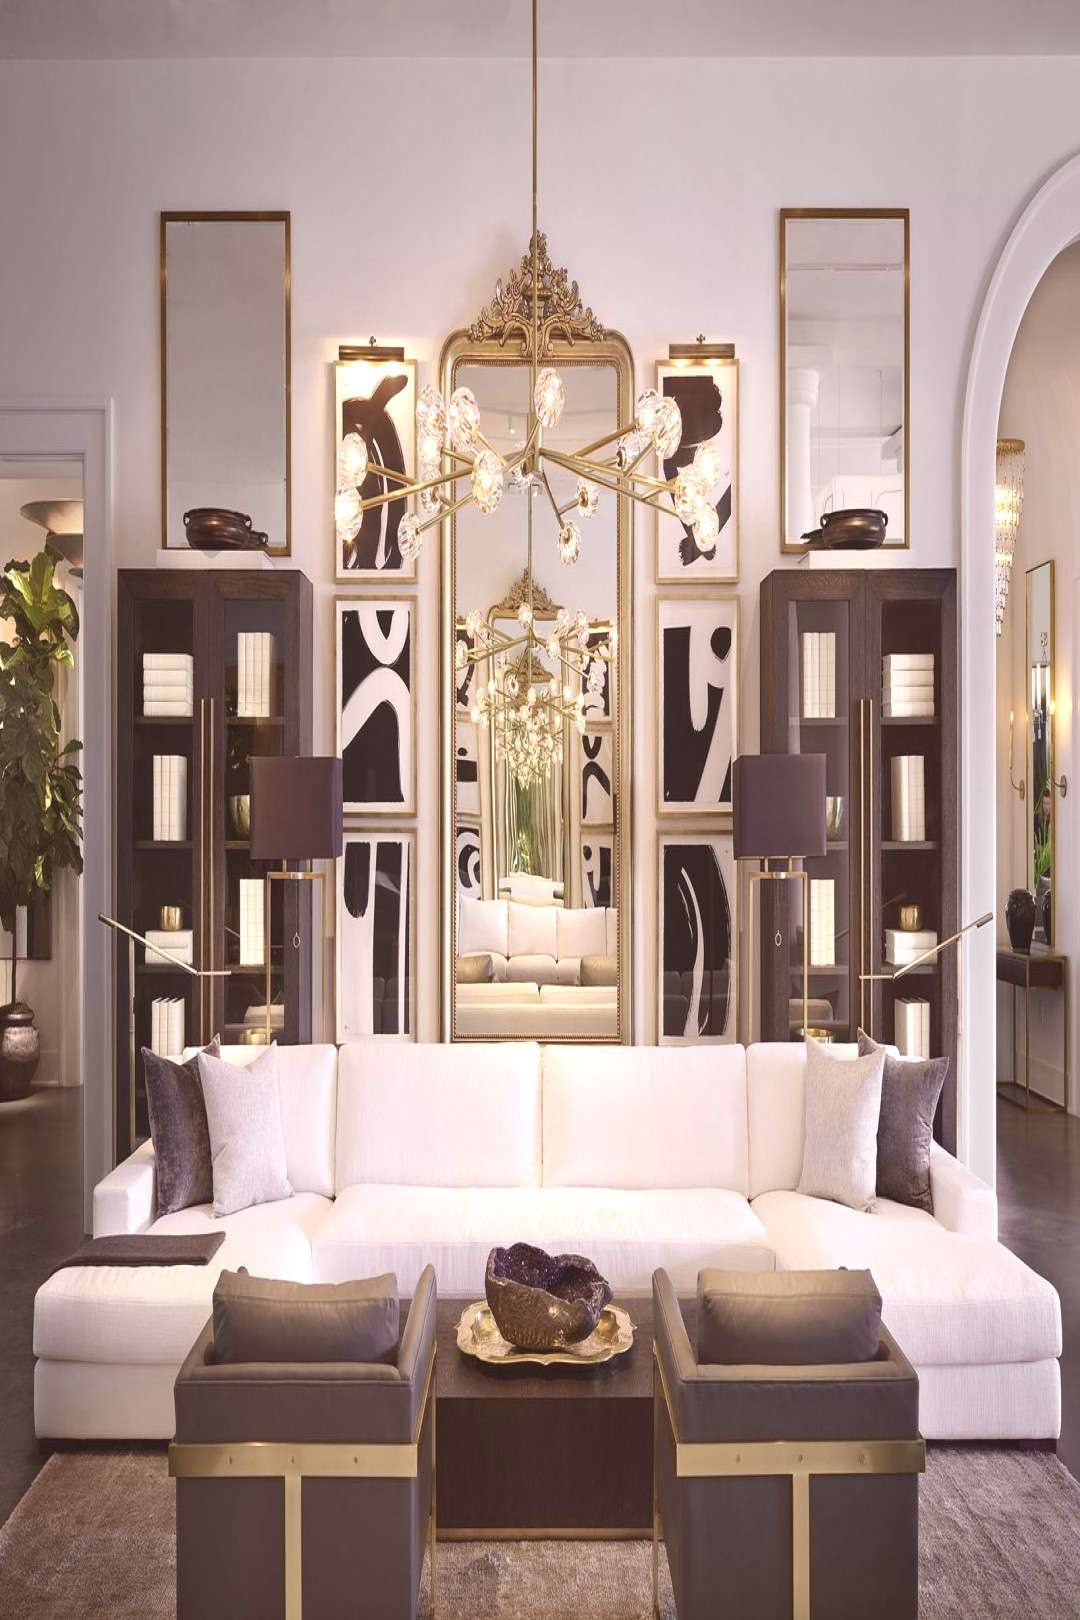 Restoration Hardware Just Opened A Mansion in Palm Beach and You're Going To Want To Move In-